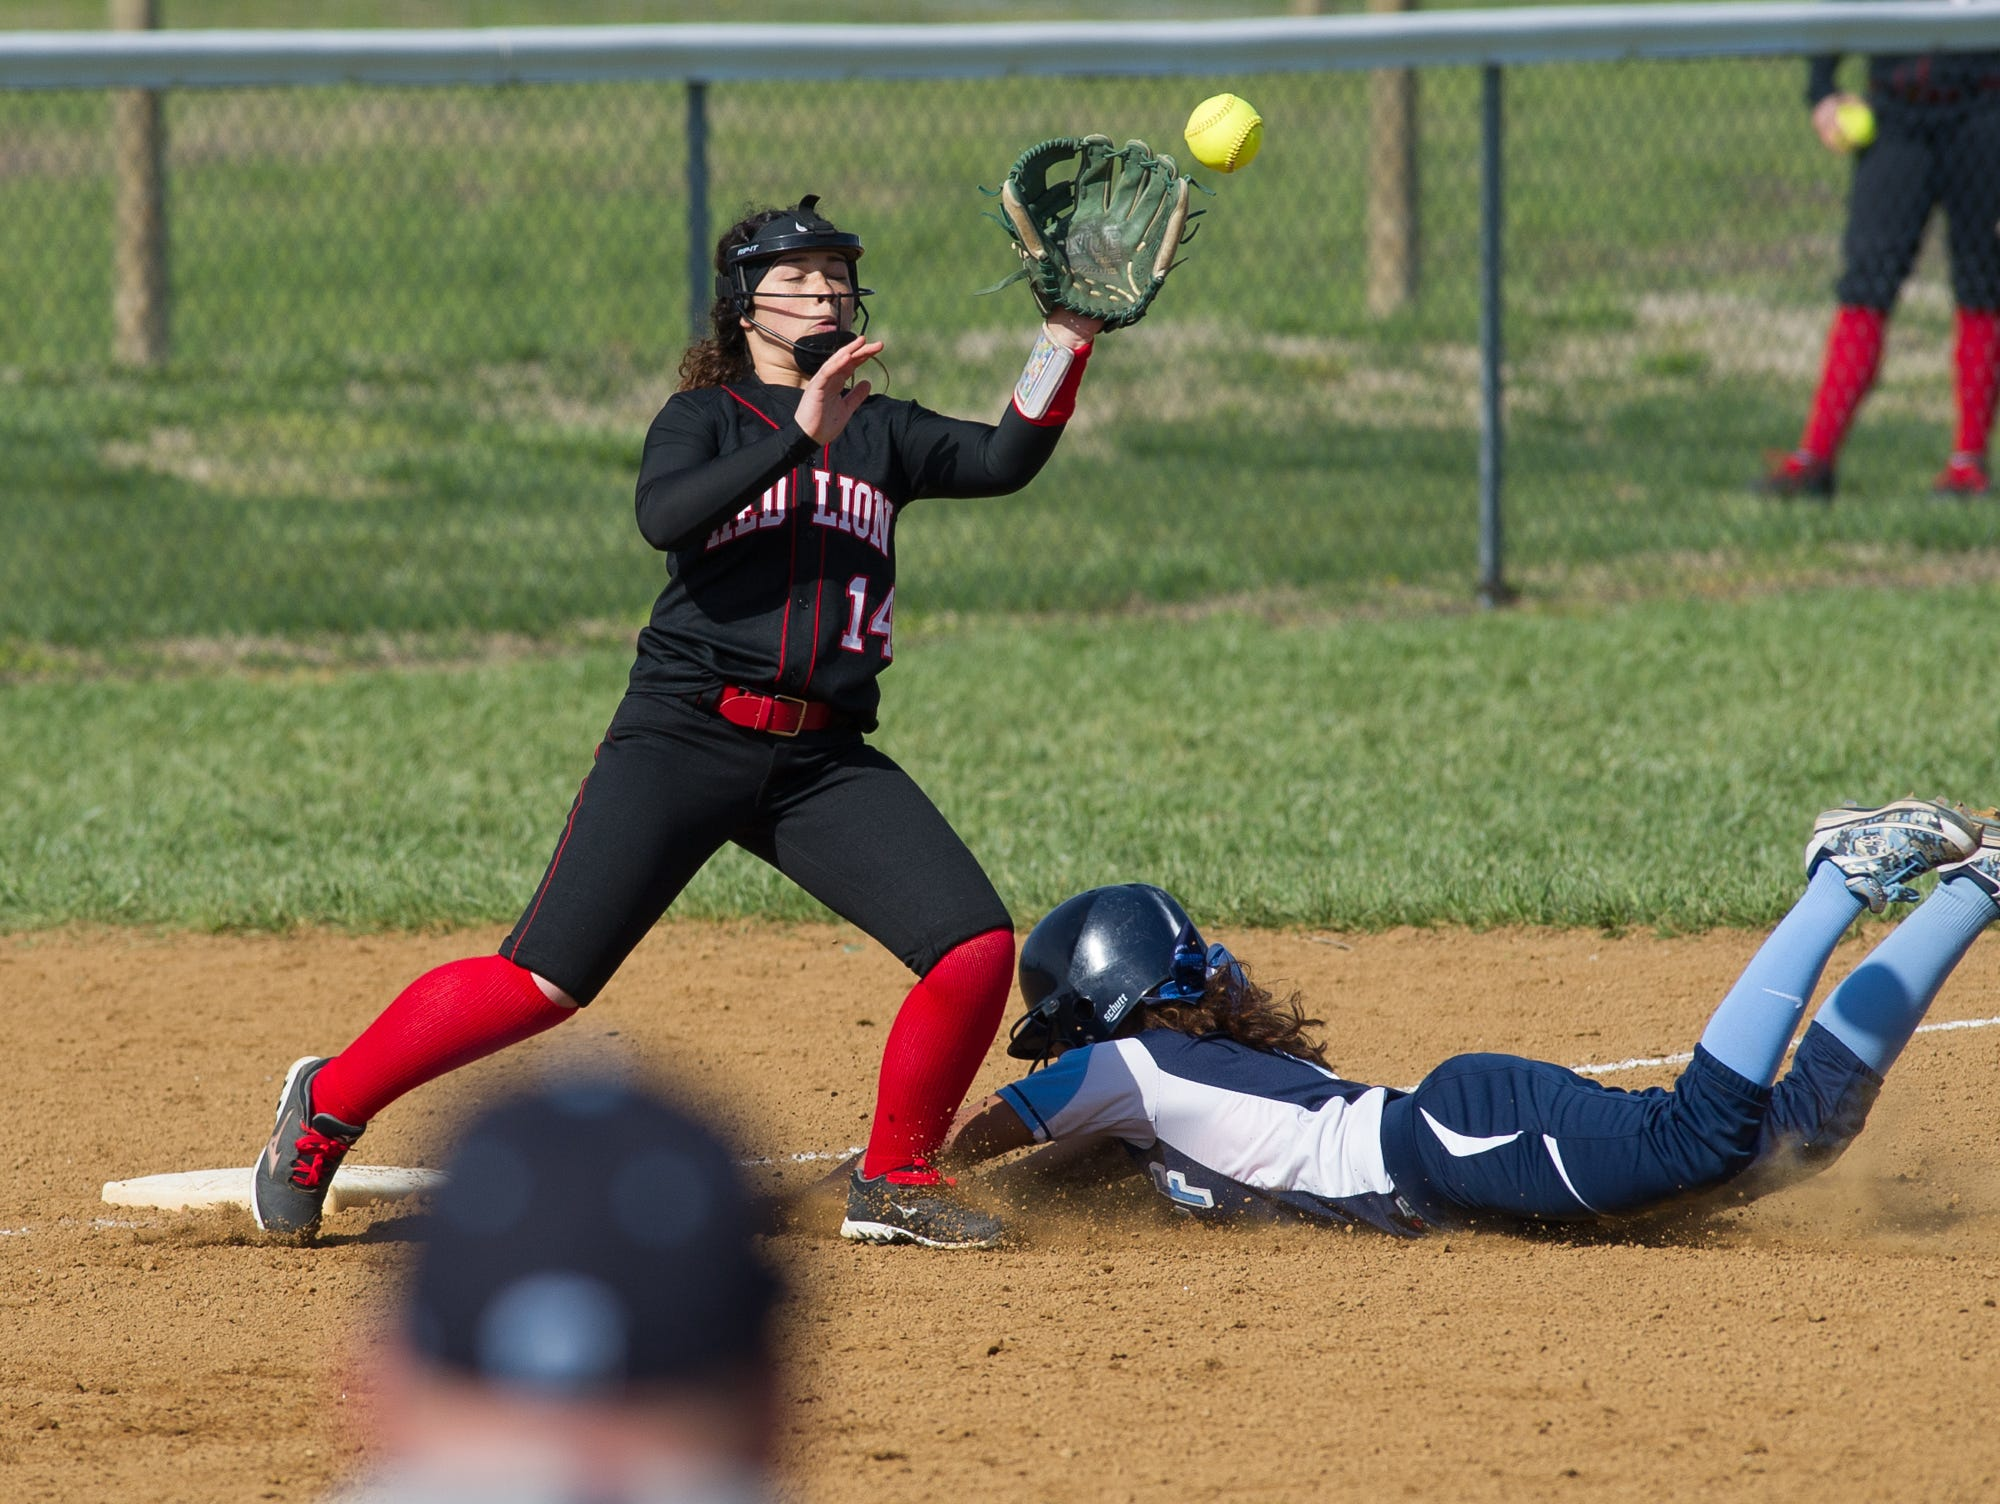 Red Lion's Gabriella Lano (14) attempts to tag out Lake Forest's Mya Maddox (1) at third base.